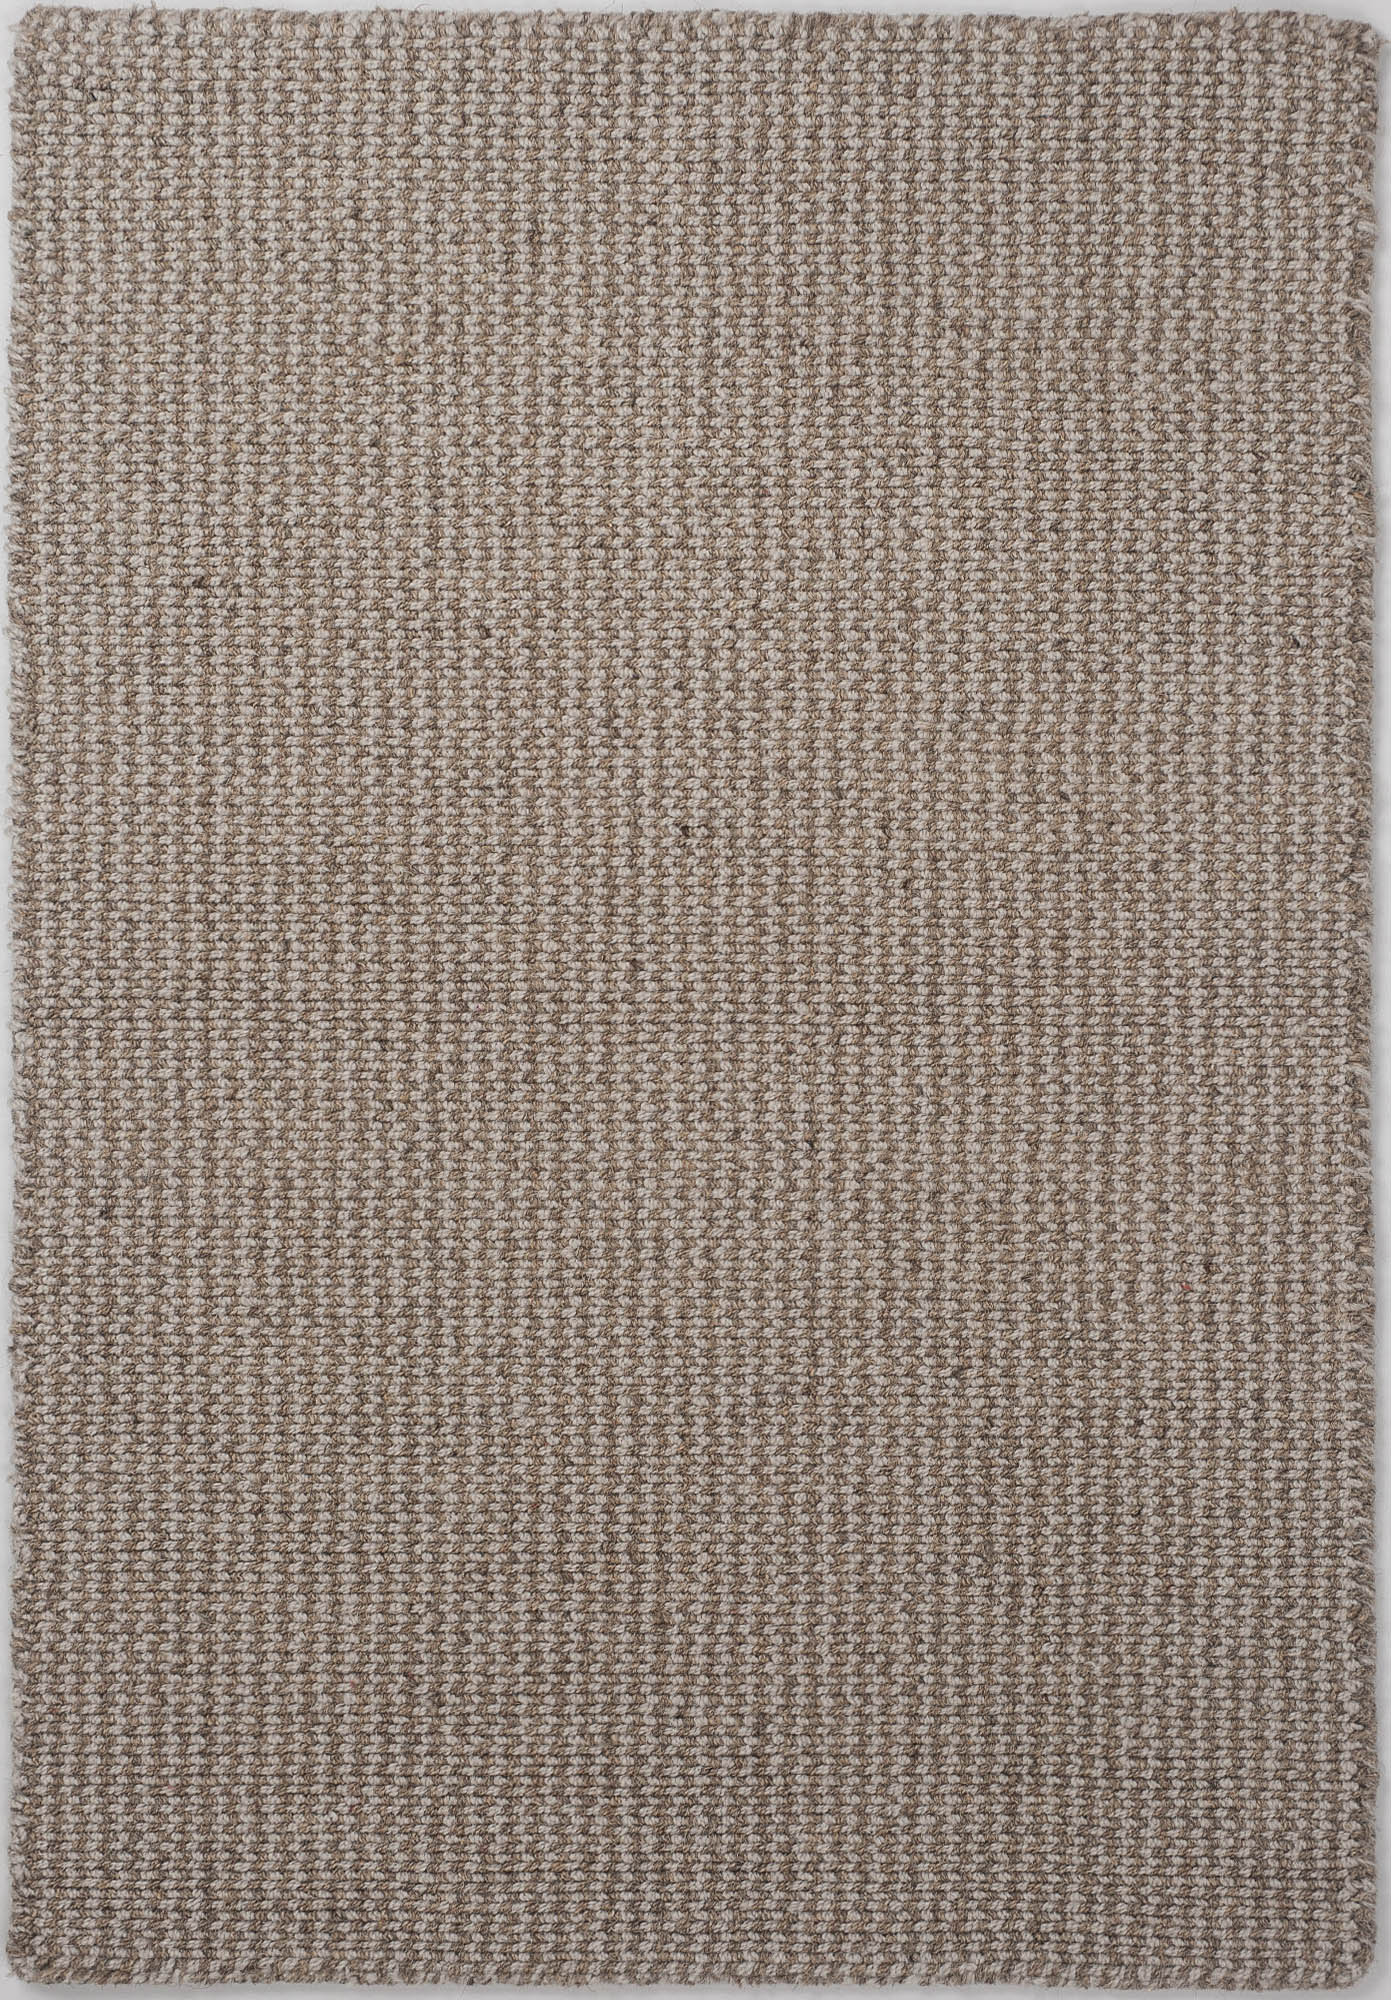 Crossweave Wool Silver Grey Natural Loom Hooked Rug Hook